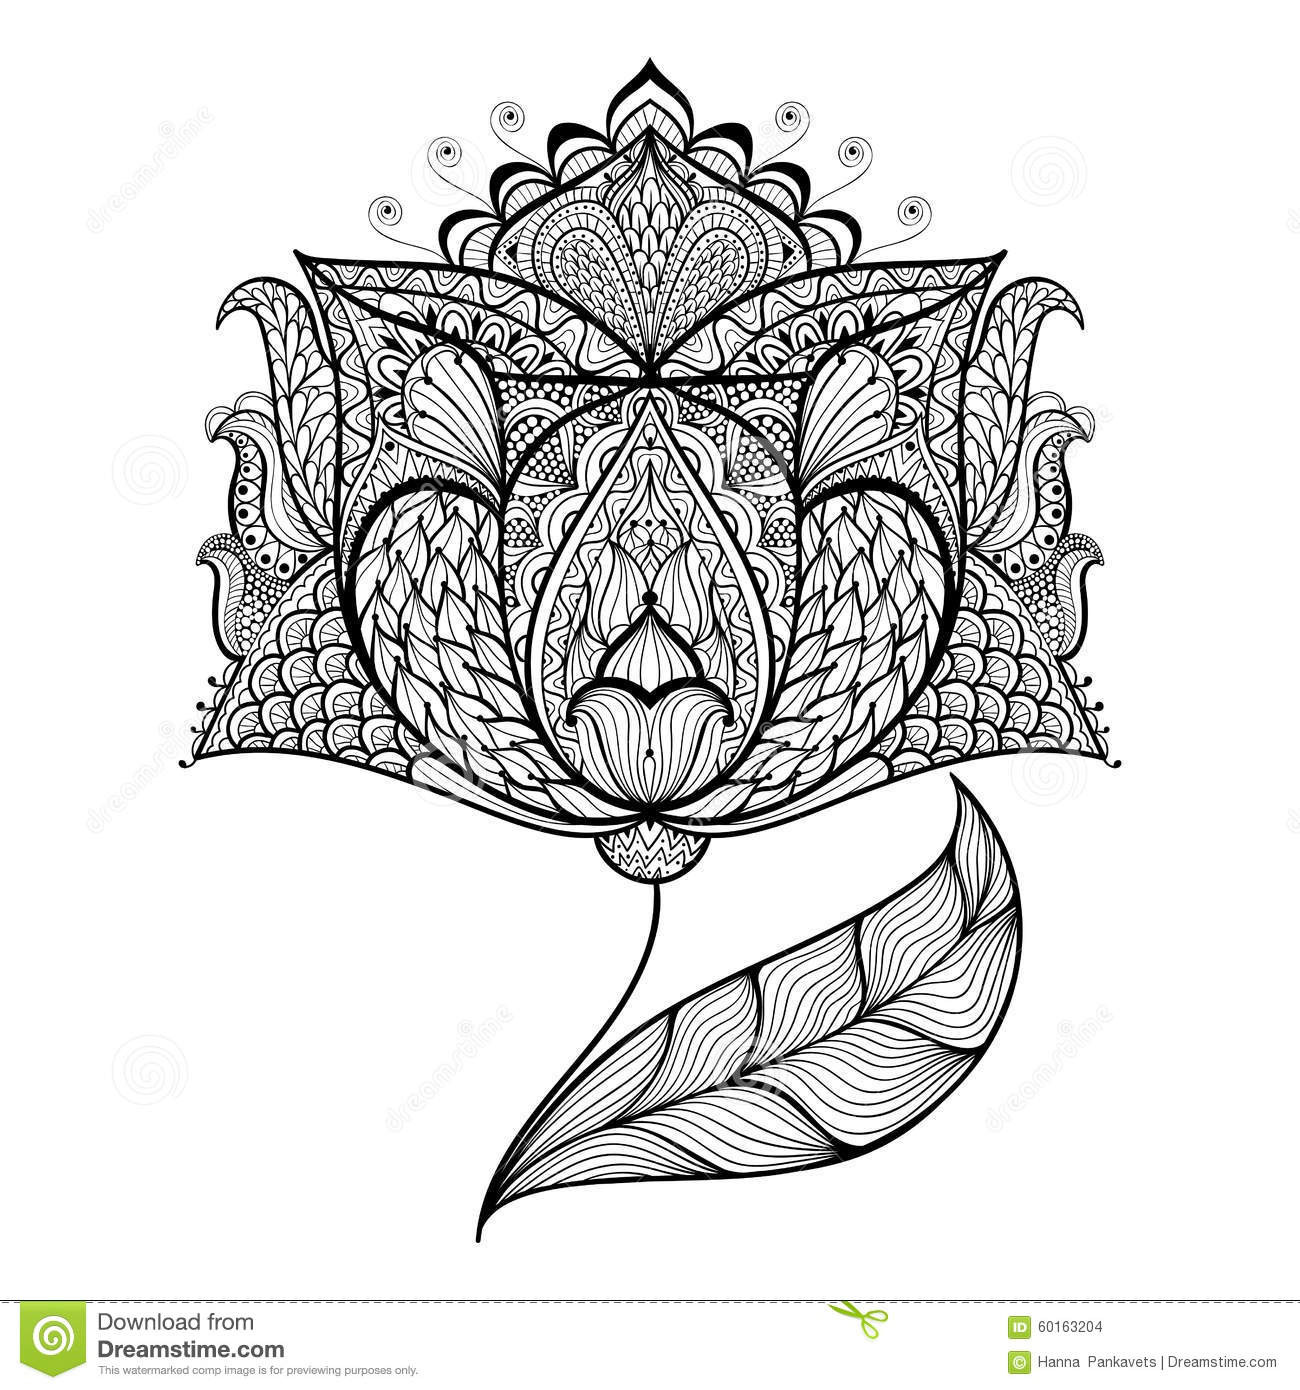 Hand Drawn Coloring Pages  Hand Drawn Magic Flower For Antistress Coloring Page Stock